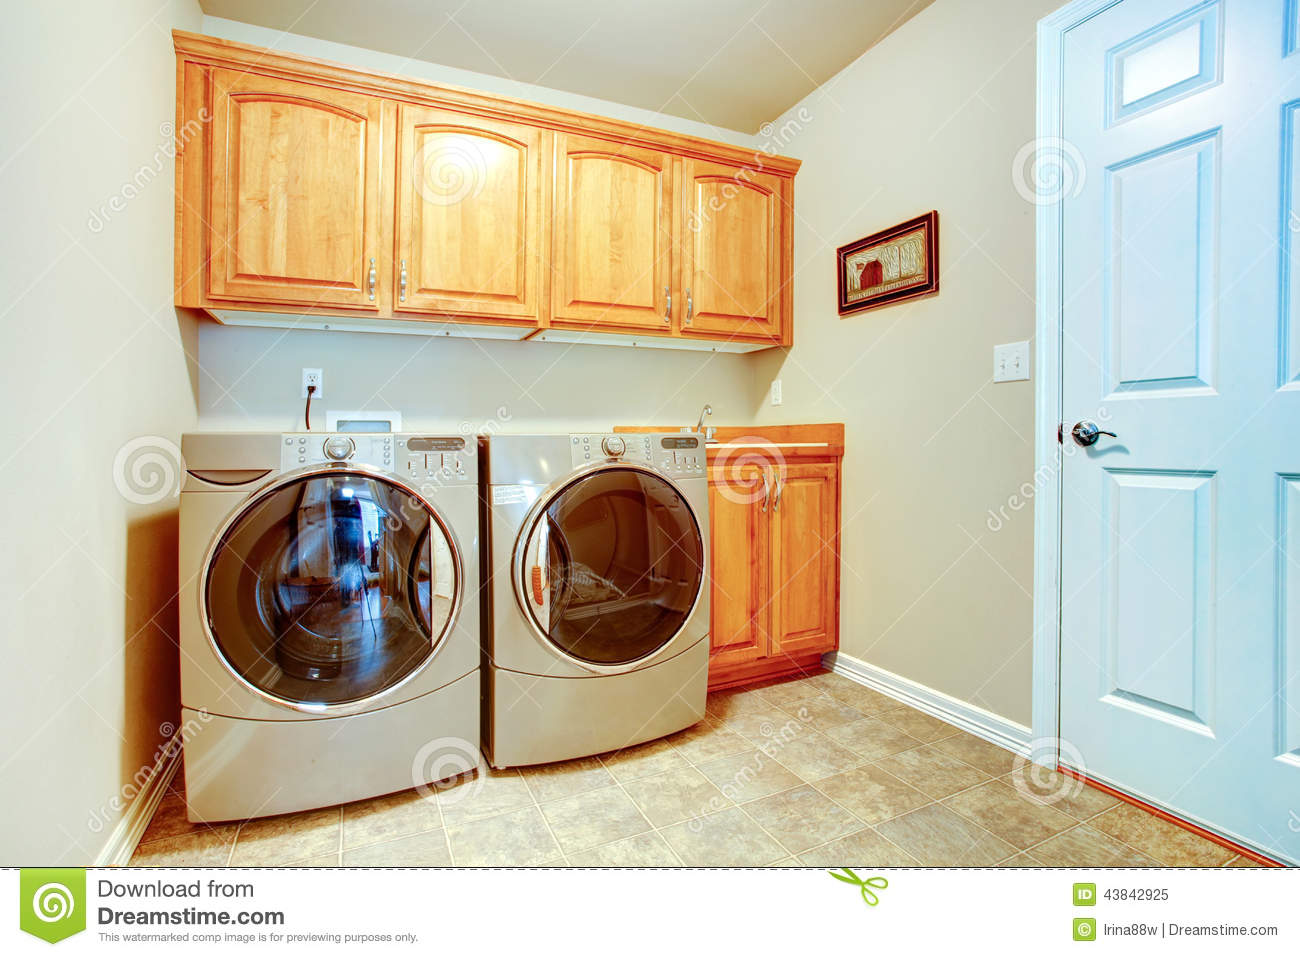 Laundry room with modern appliances